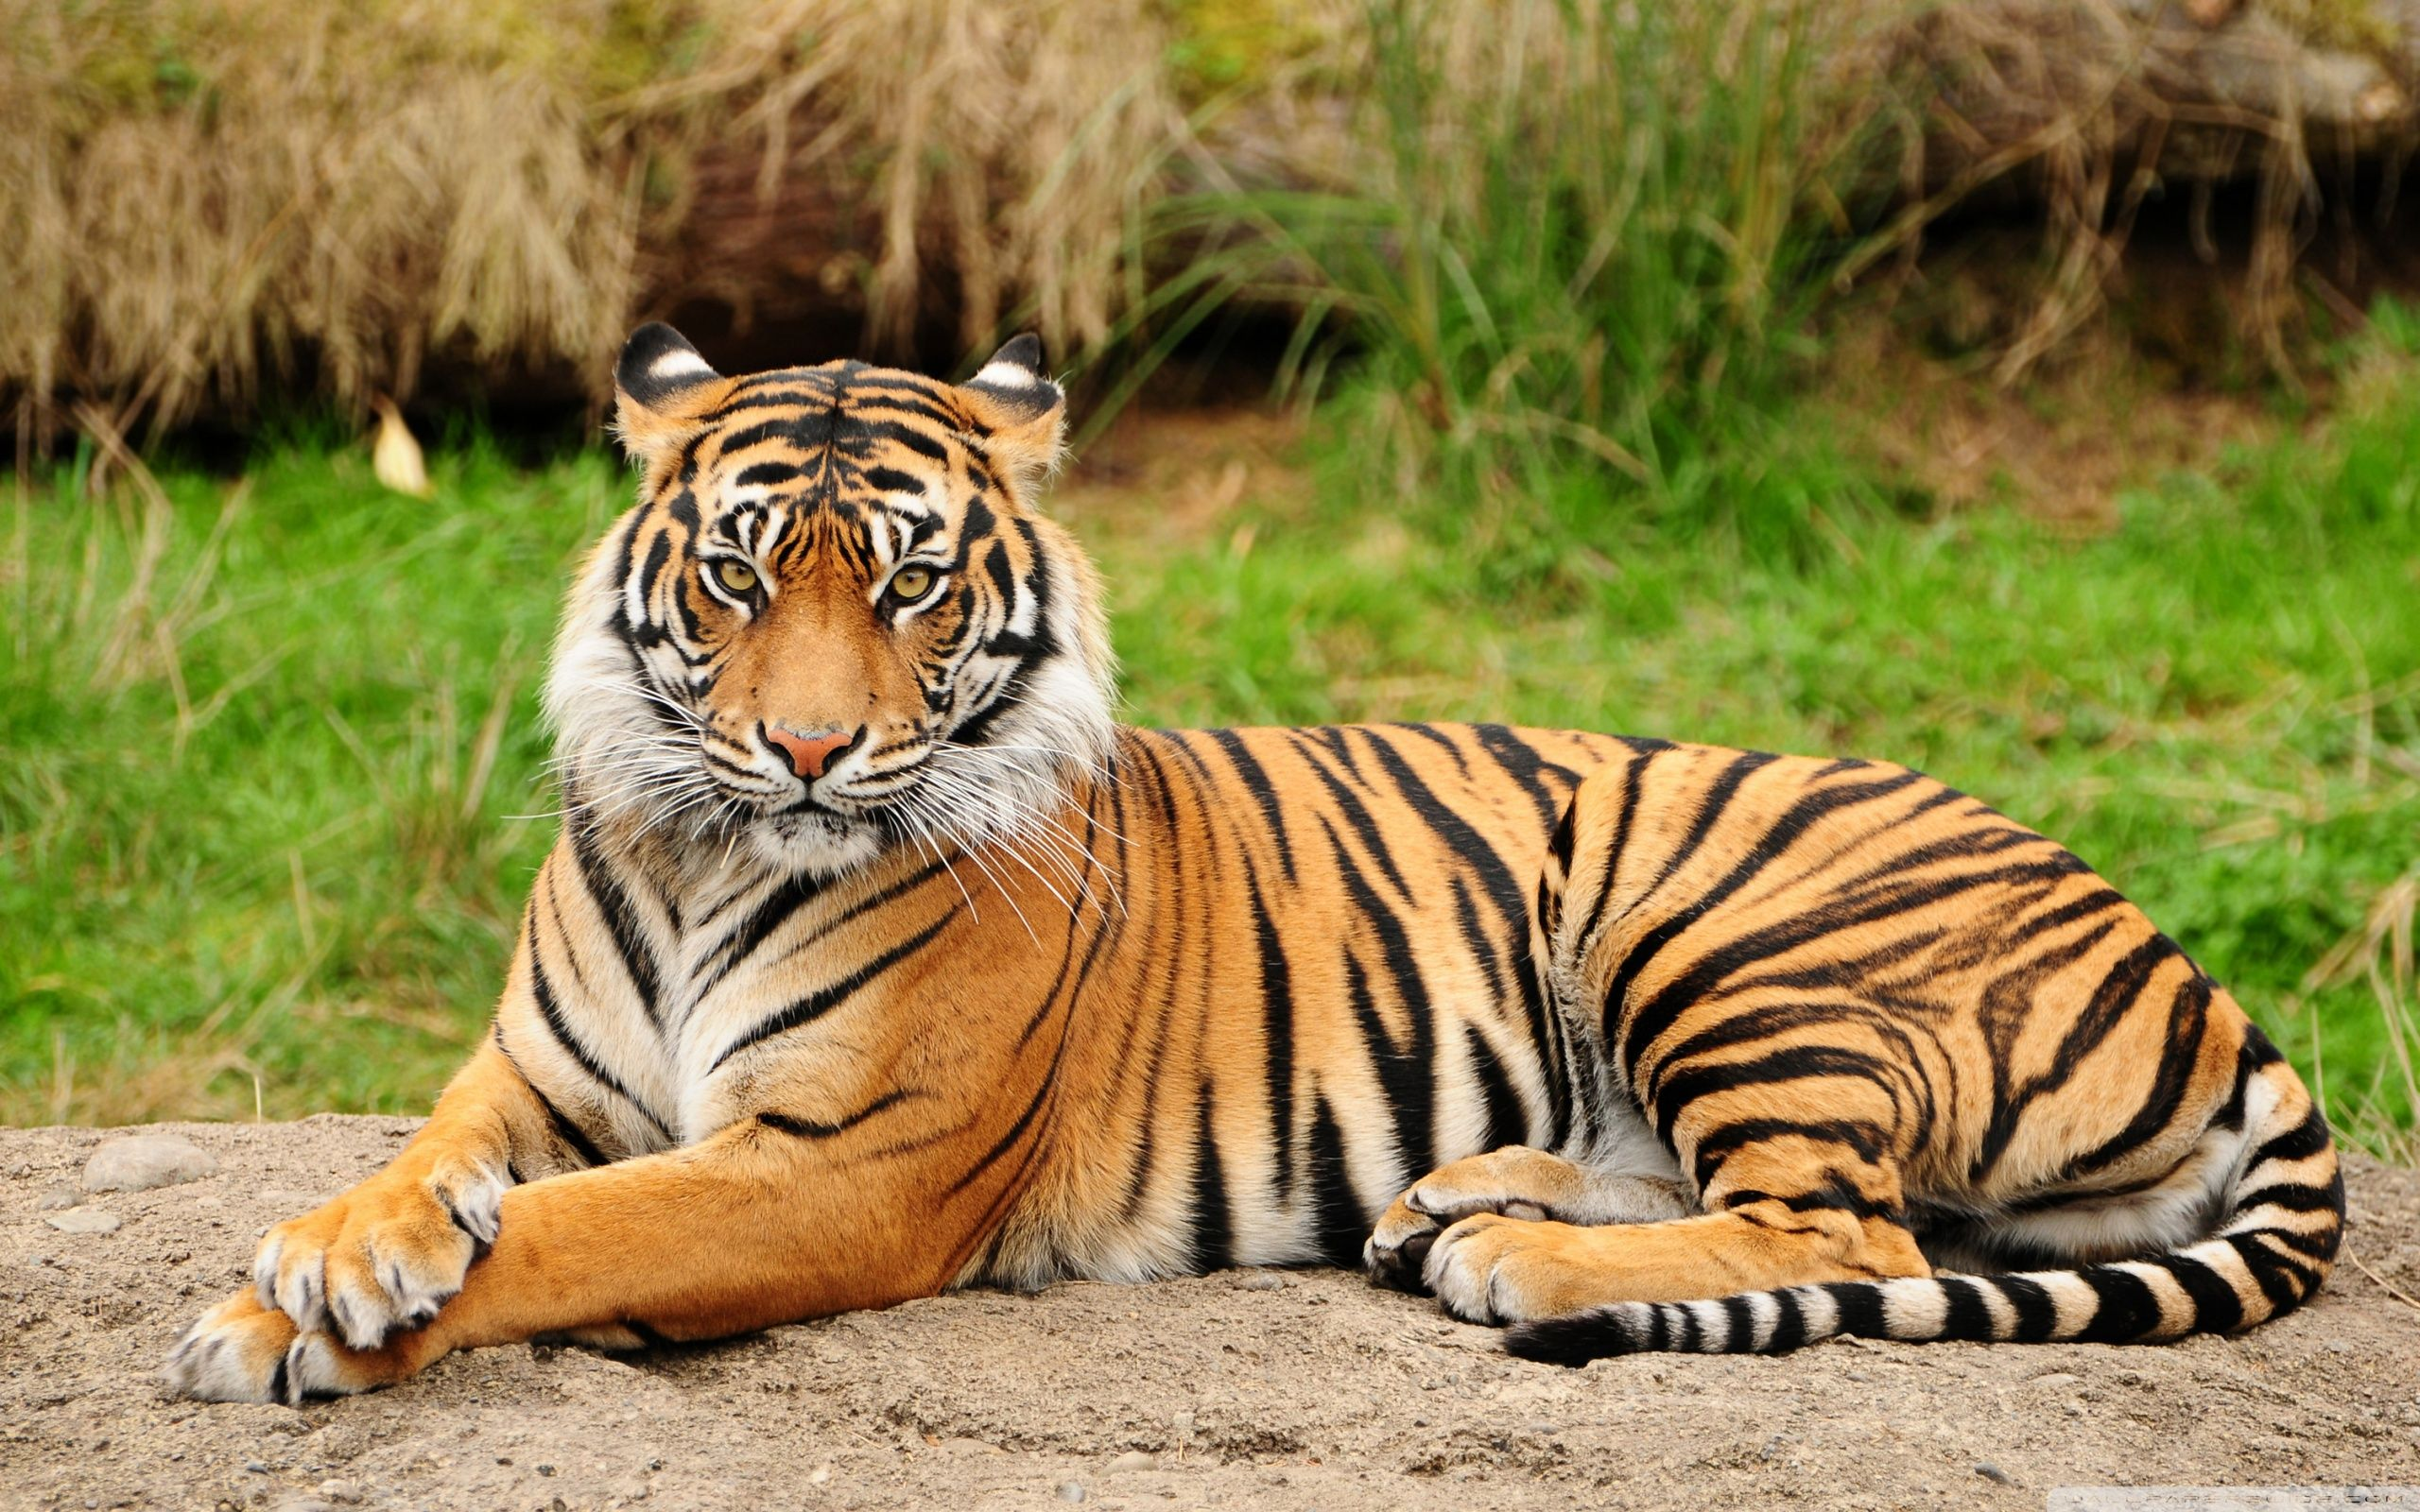 Tiger Hd Images Get Free Top Quality Tiger Hd Images For Your Desktop Pc Background Ios Or Android Mobile Phones Tiger Pictures Sumatran Tiger Bengal Tiger